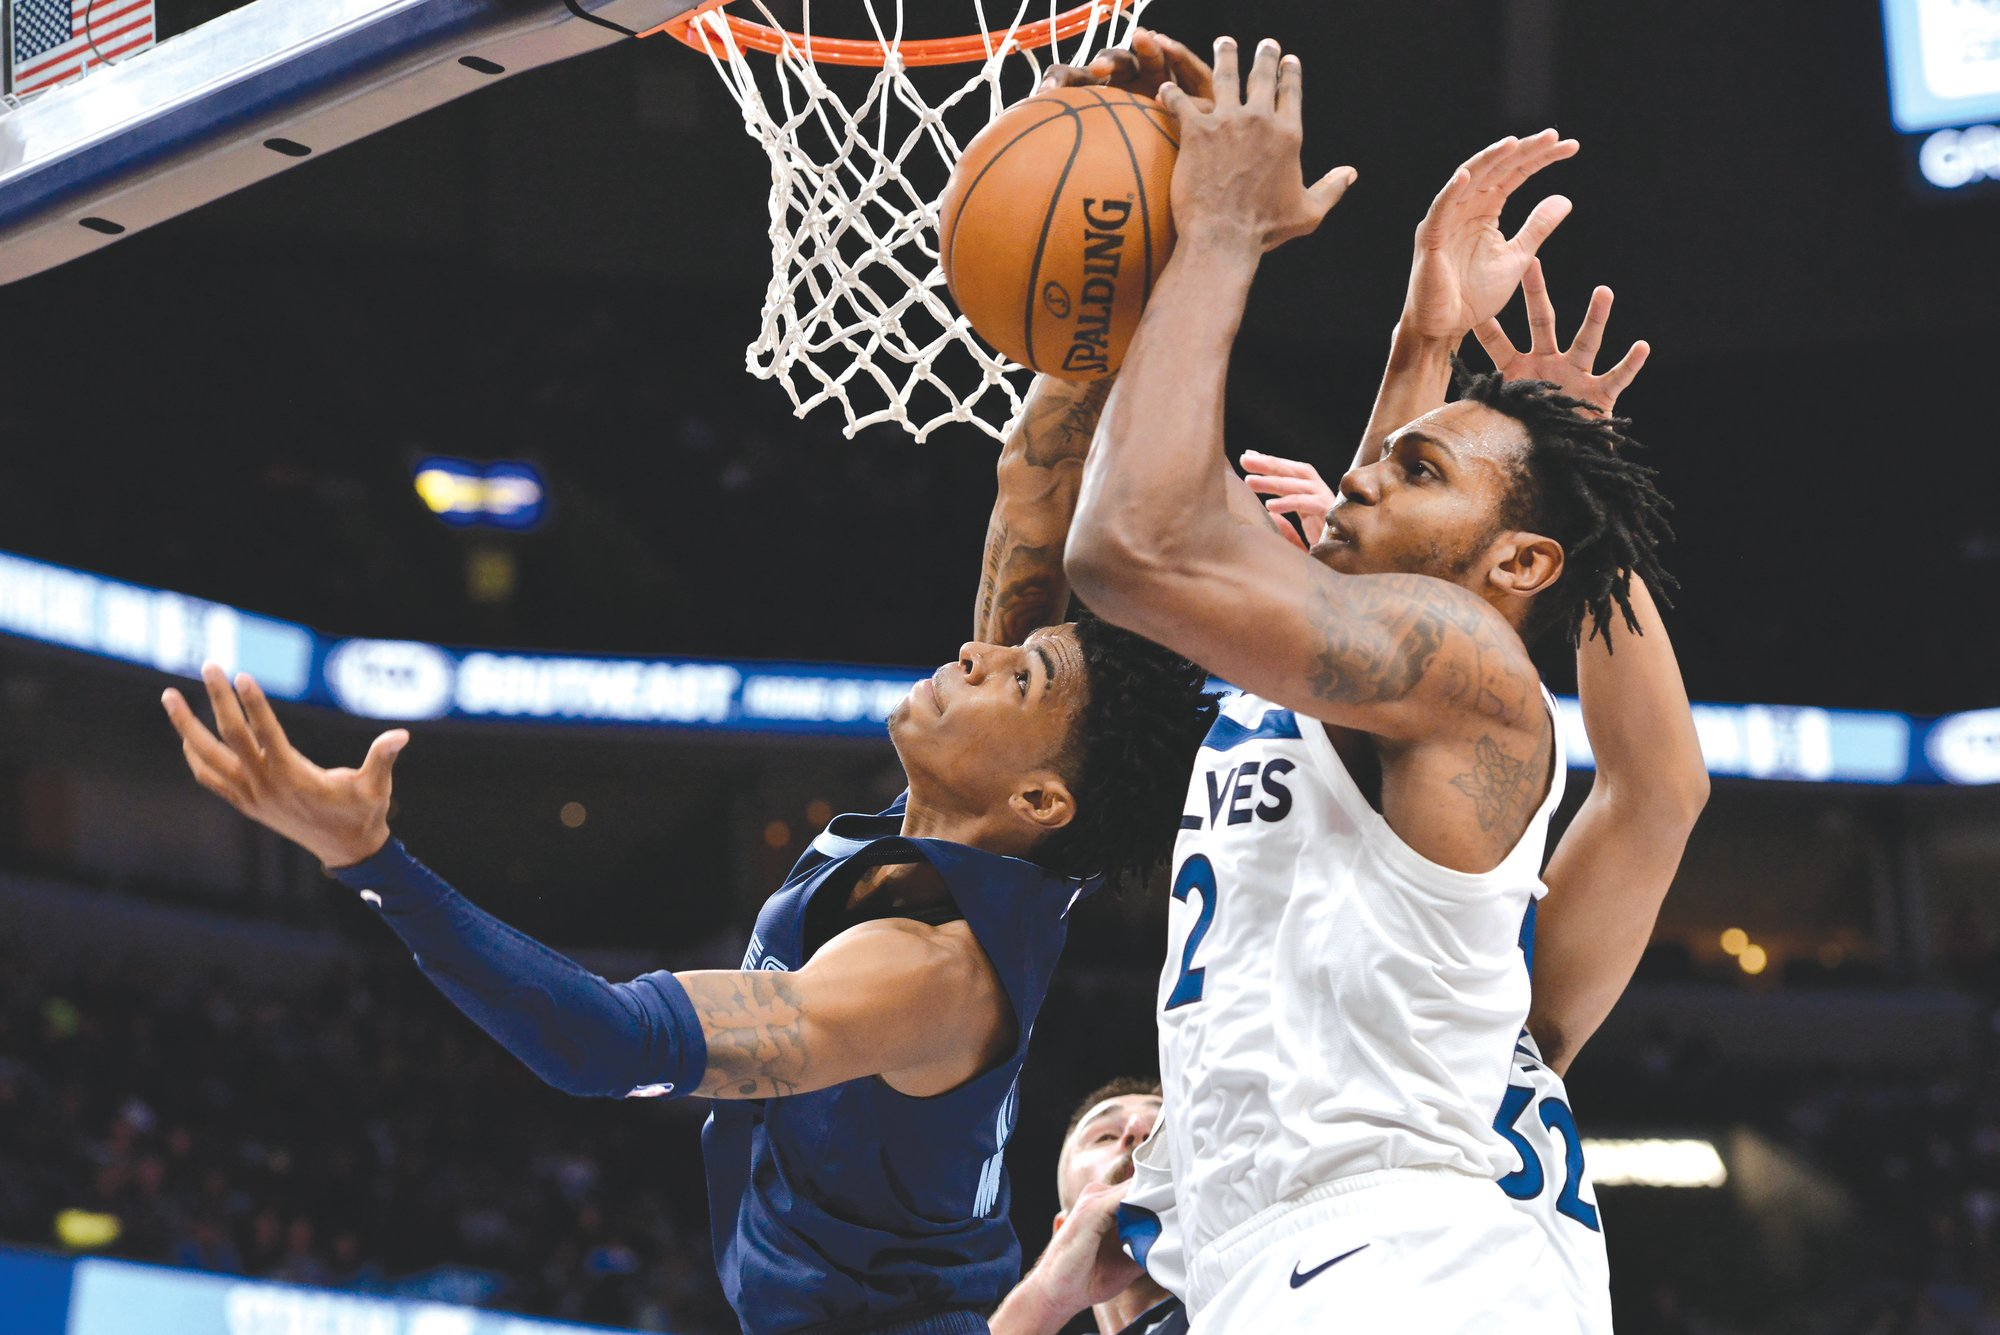 Memphis guard Ja Morant, left, Is fouled by Minnesota forward  Treveon Graham during the Grizzlies' 137-121 victory on Wednesday in Memphis, Tennessee. Morant scored 26 points.